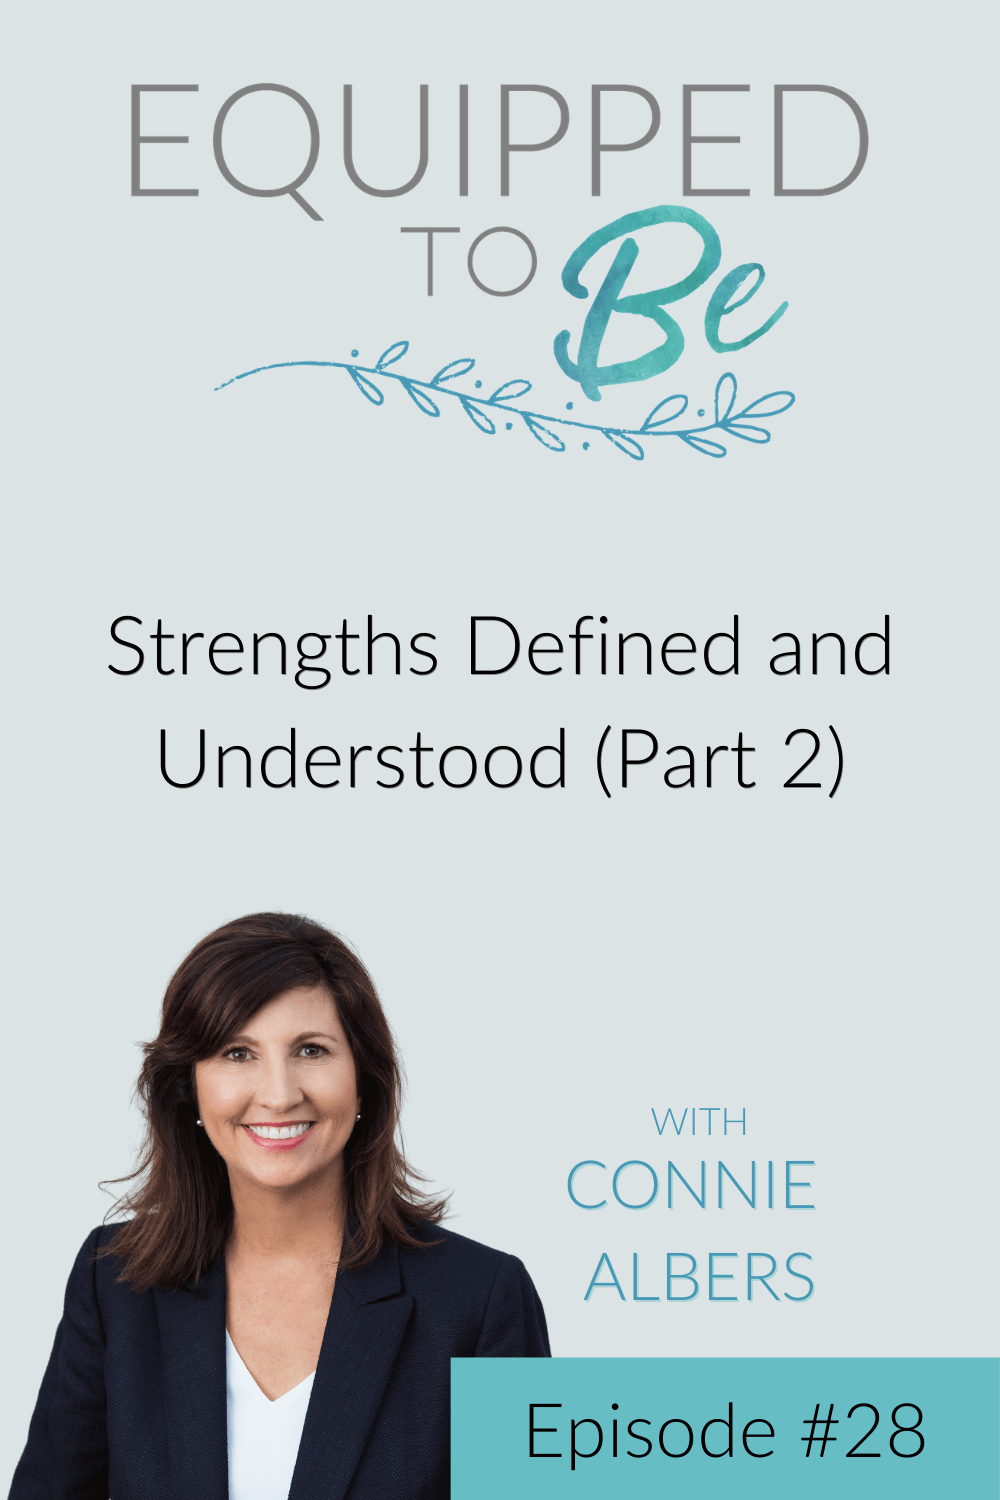 Strengths Defined and Understood Part 2 - ETB #28